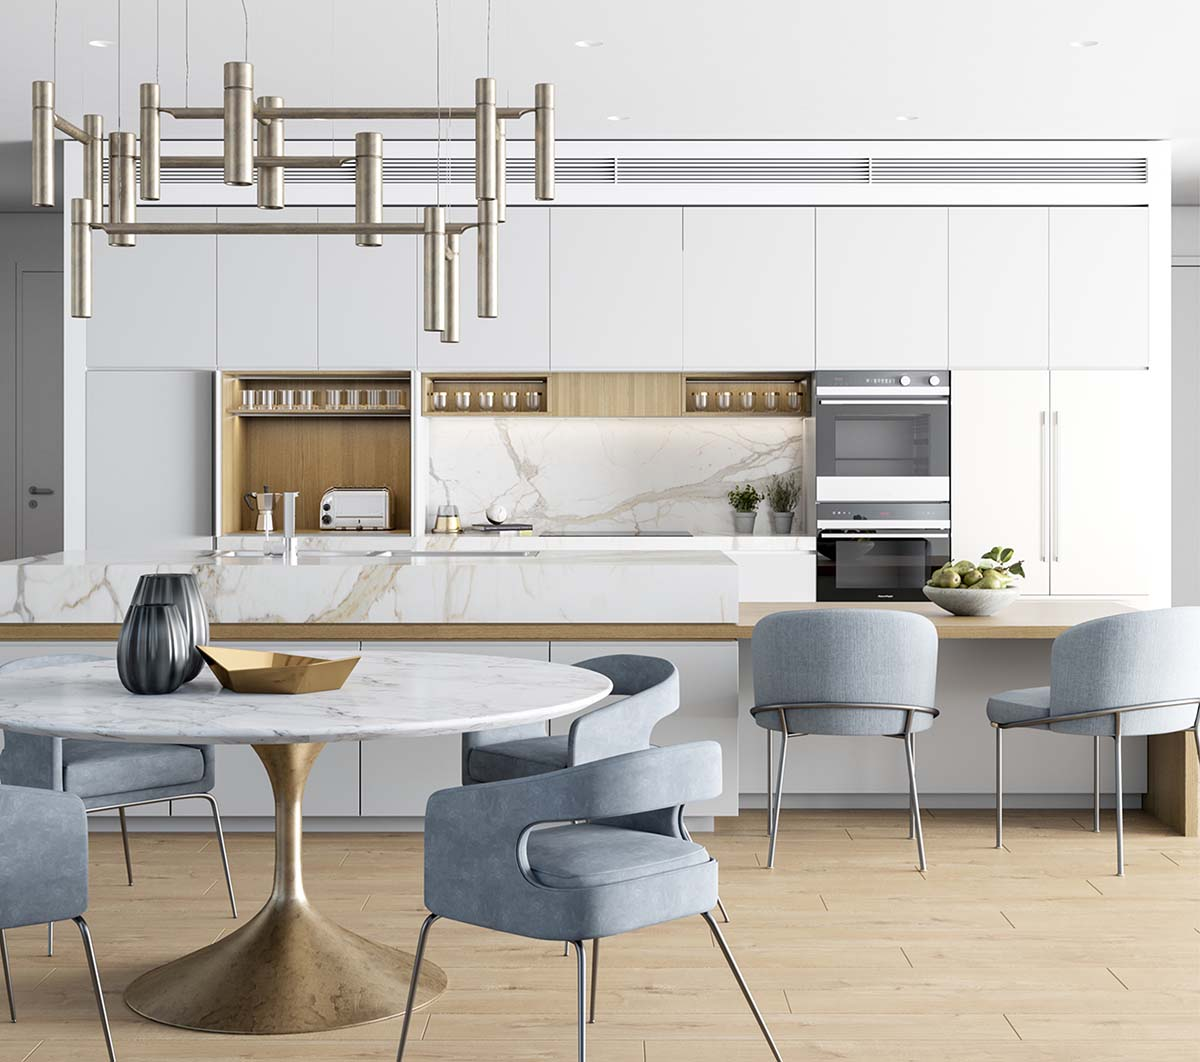 Kitchen view and dining area with white and grey palette